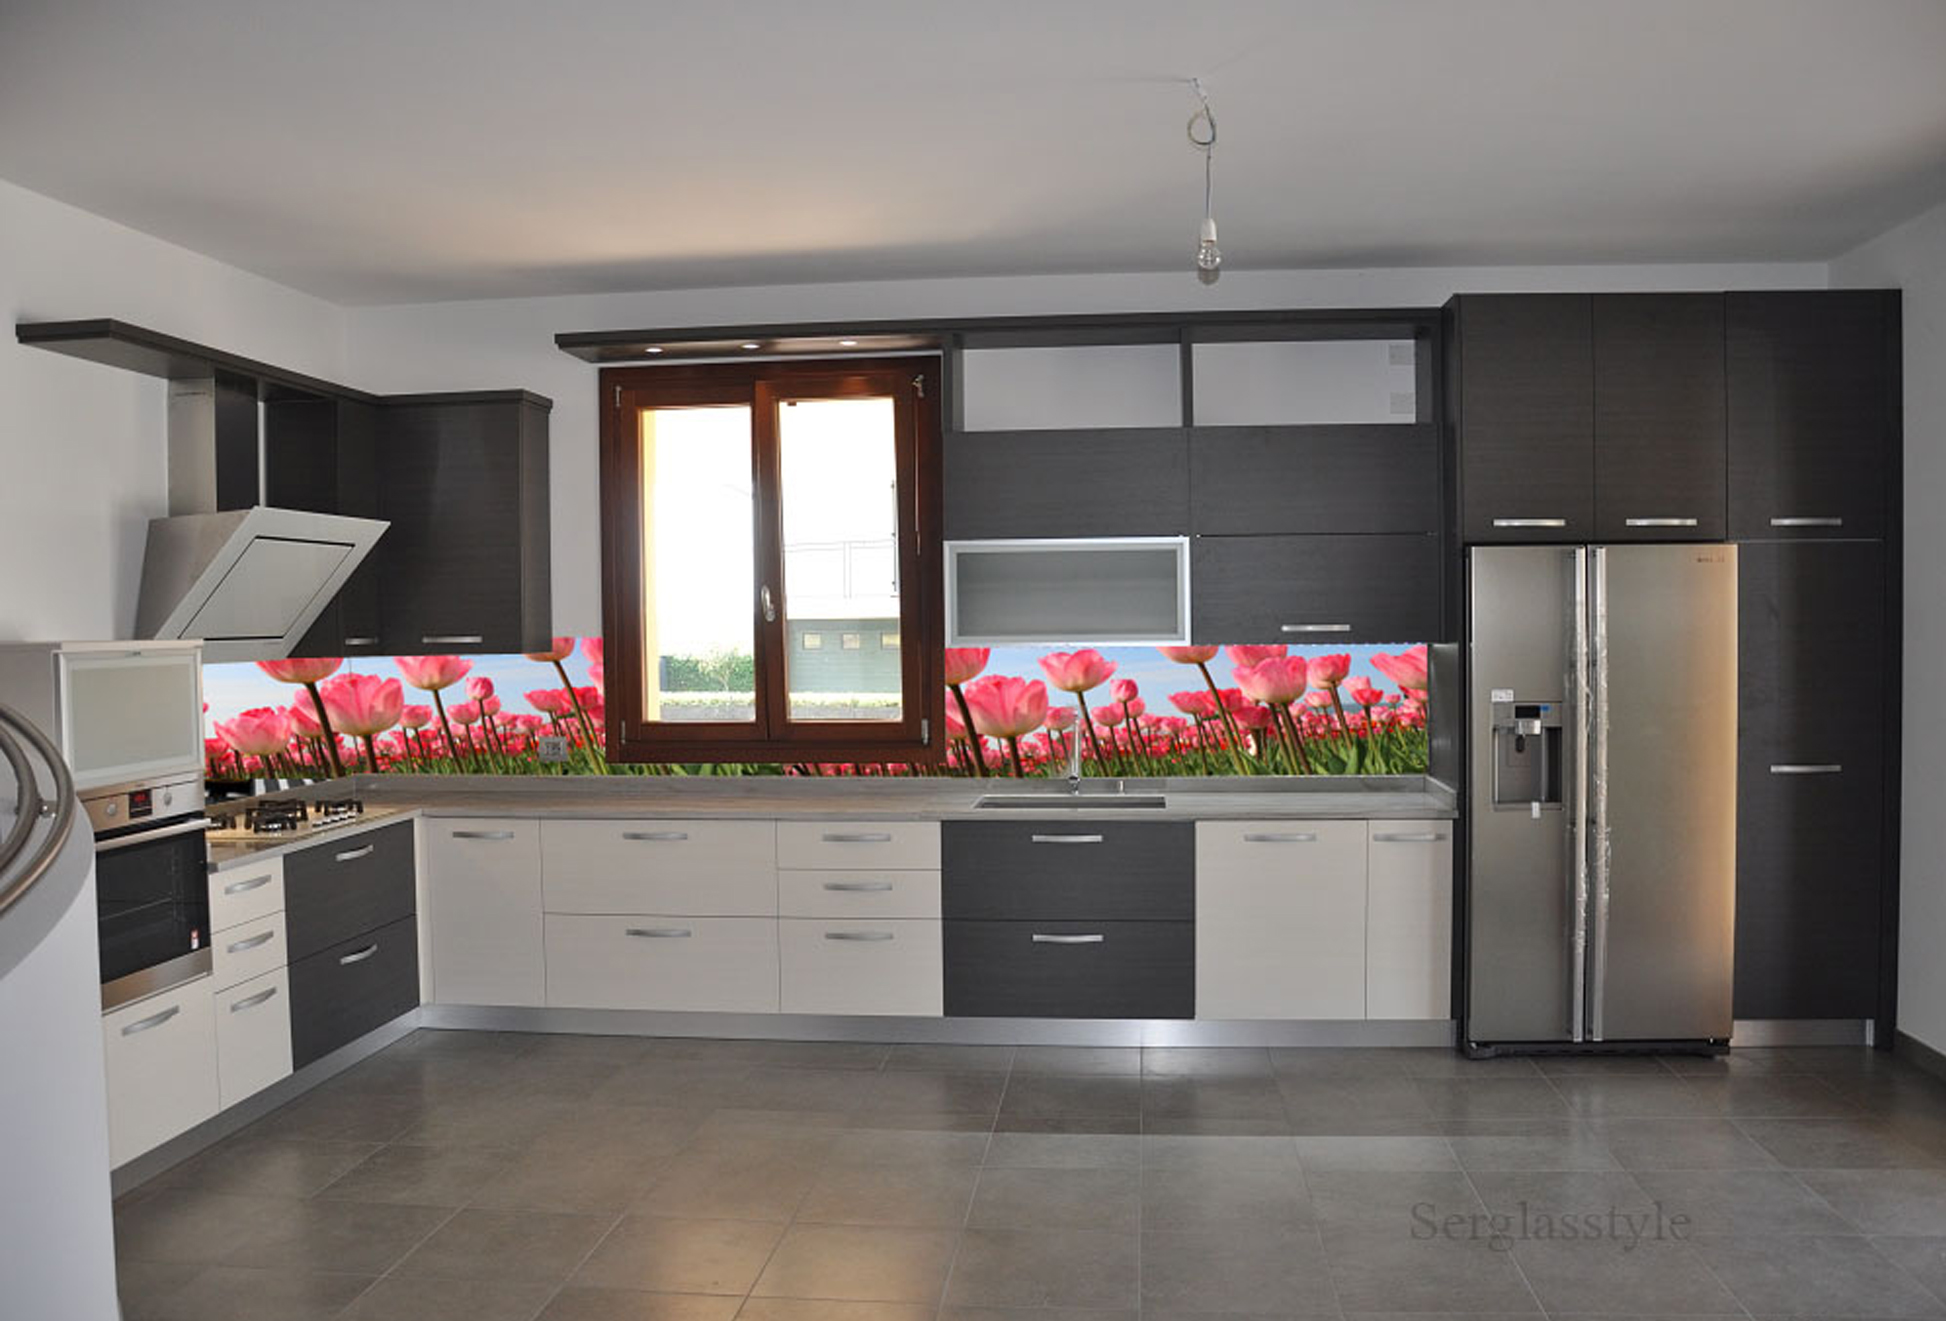 Flower with cucine ad angolo con finestra for Cucine ad angolo con finestra